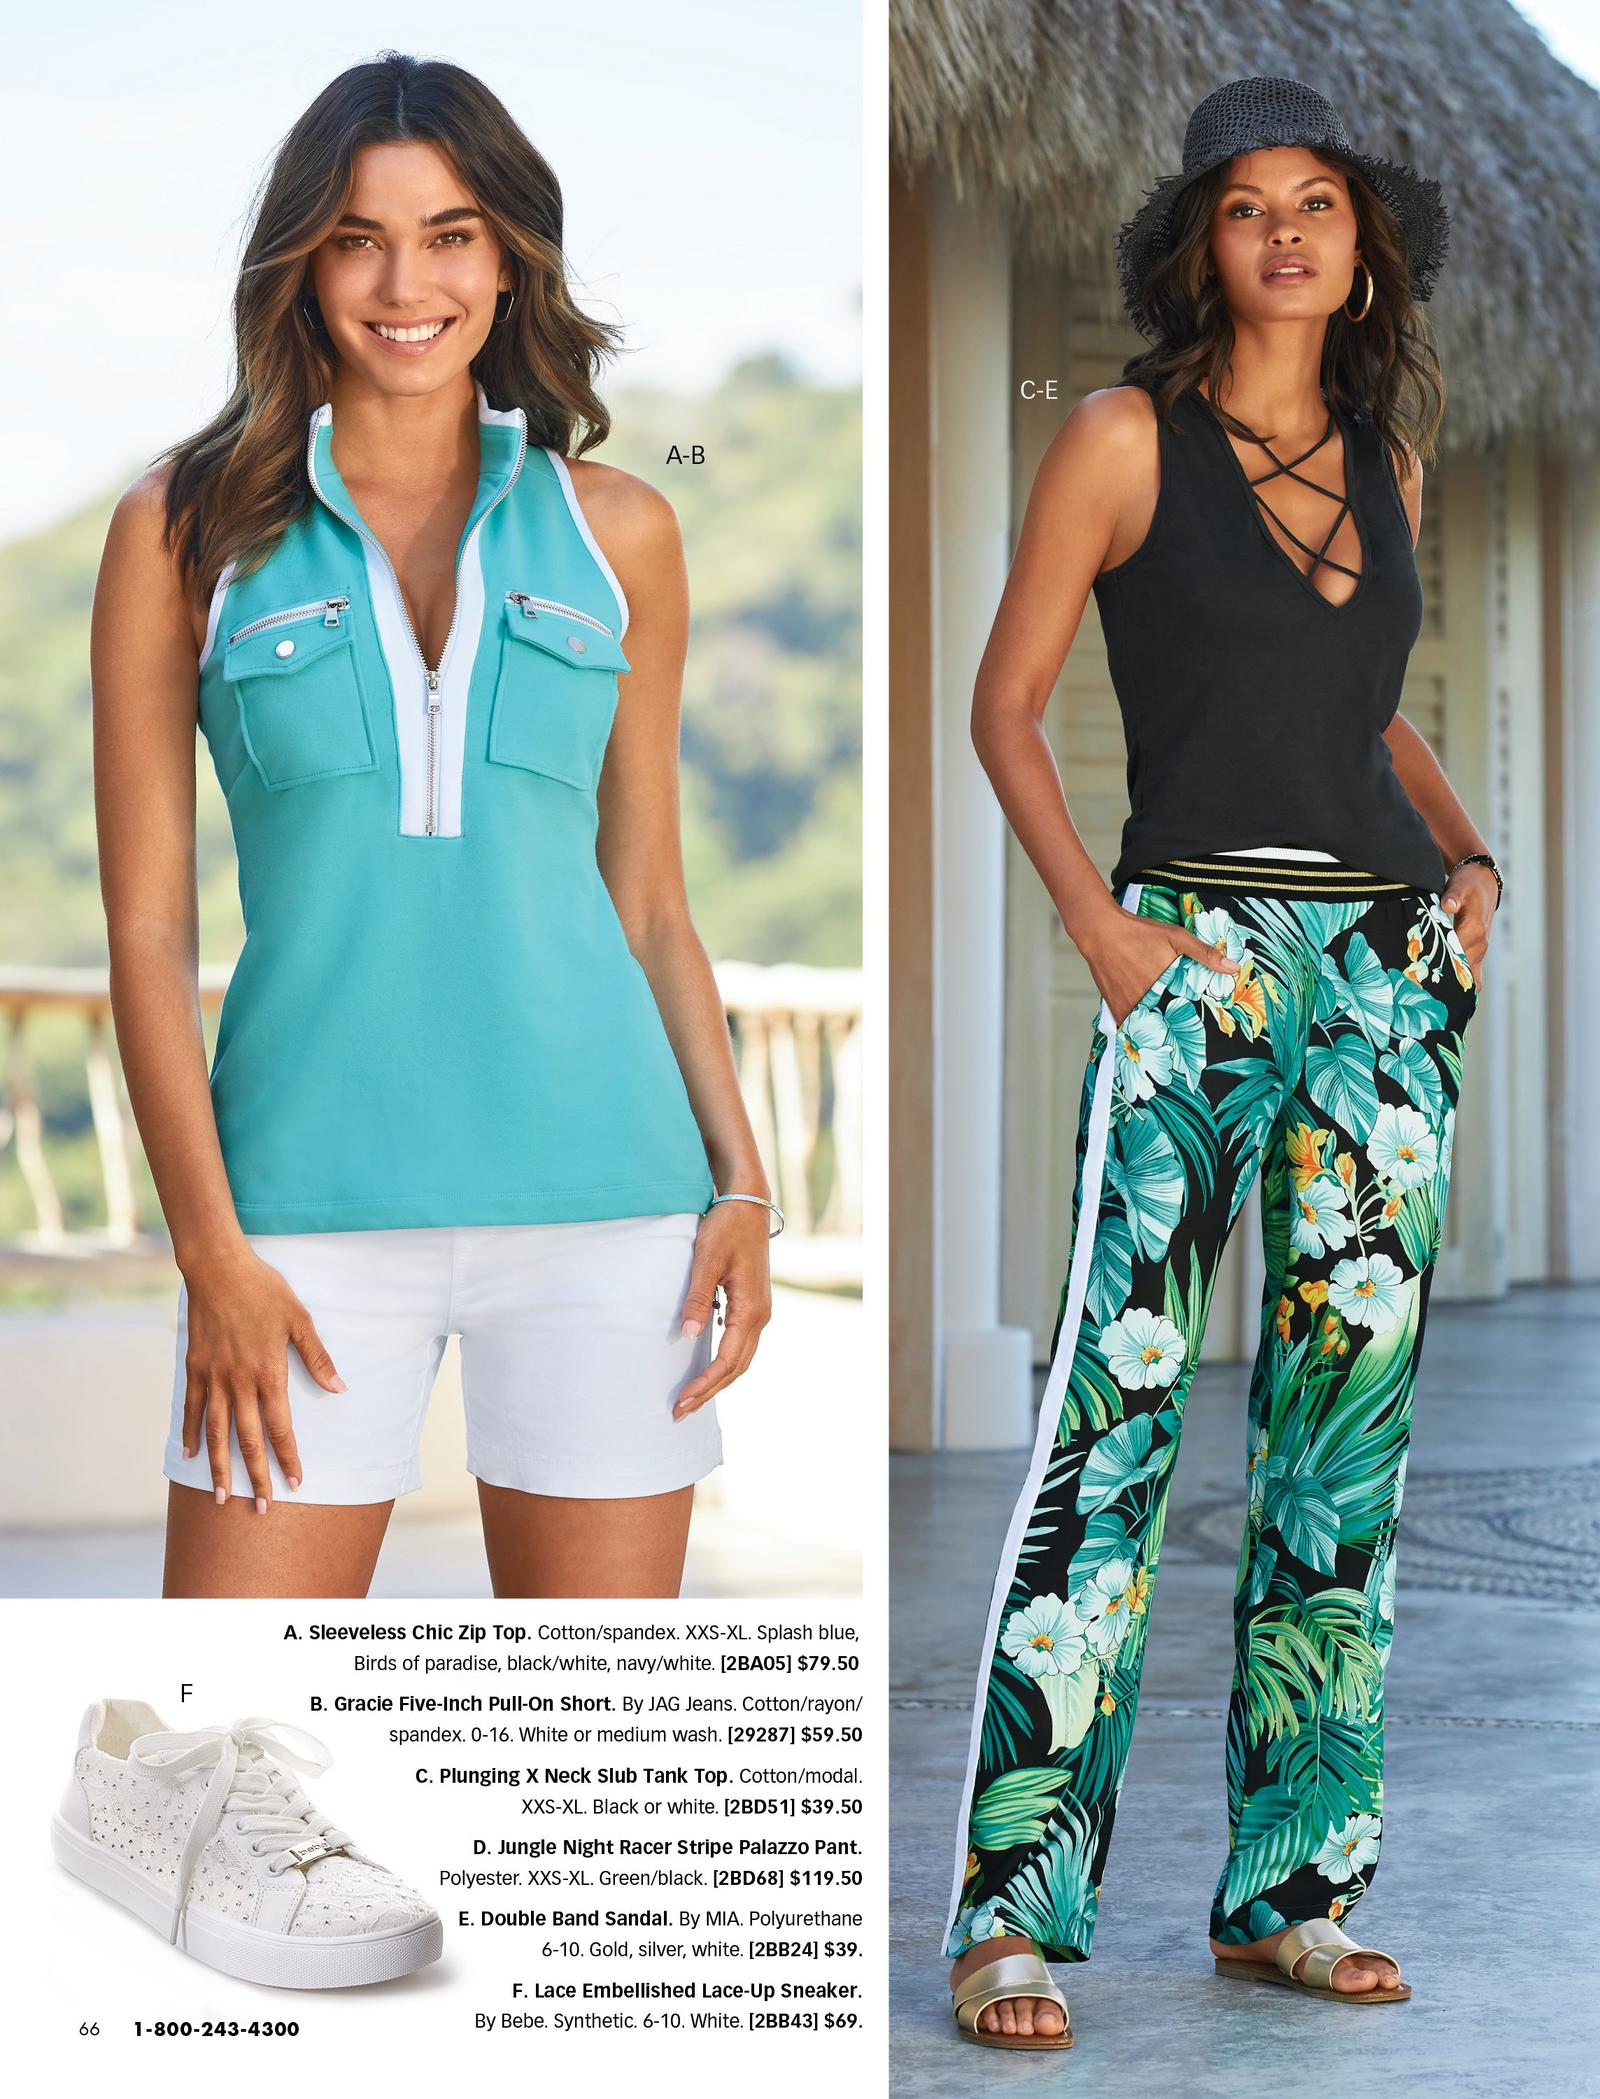 left model wearing a blue sleeveless collared sport top and white shorts. right model wearing a black sleeveless x-neck slub top, black and green jungle printed racer stripe palazzo pants, gold double-strap sandals, gold hoop earrings, and black straw hat. also shown: white lace embellished sneakers.